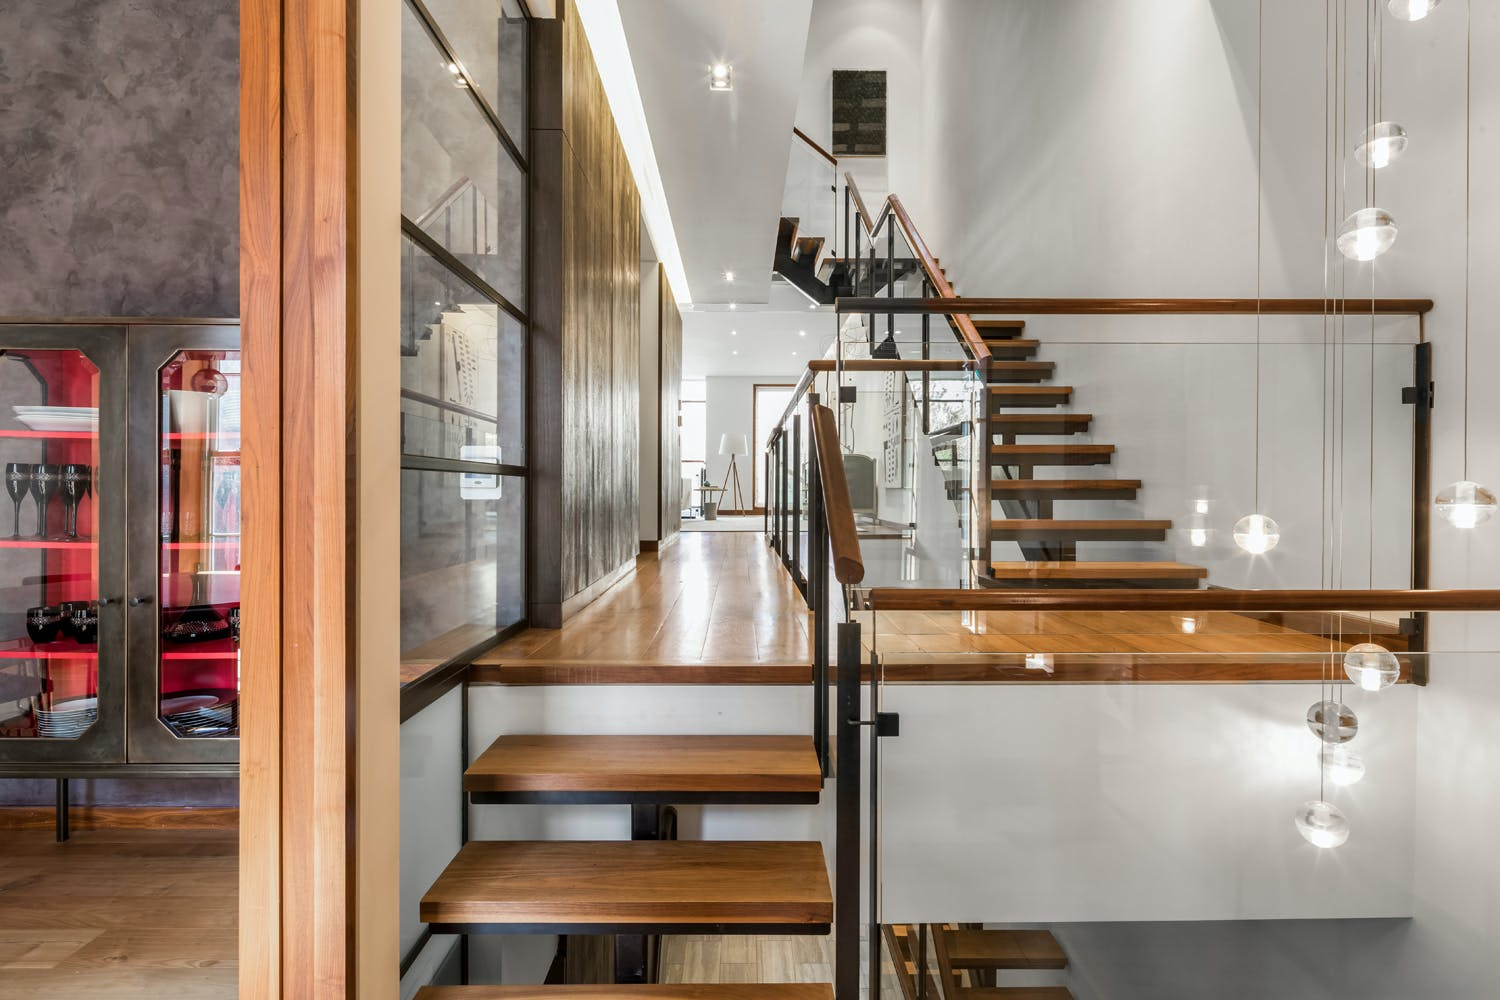 109 Waverly Place - 8c805fa1-d9e9-48a2-9a88-d2d7ad76de49 - New York City Townhouse Real Estate